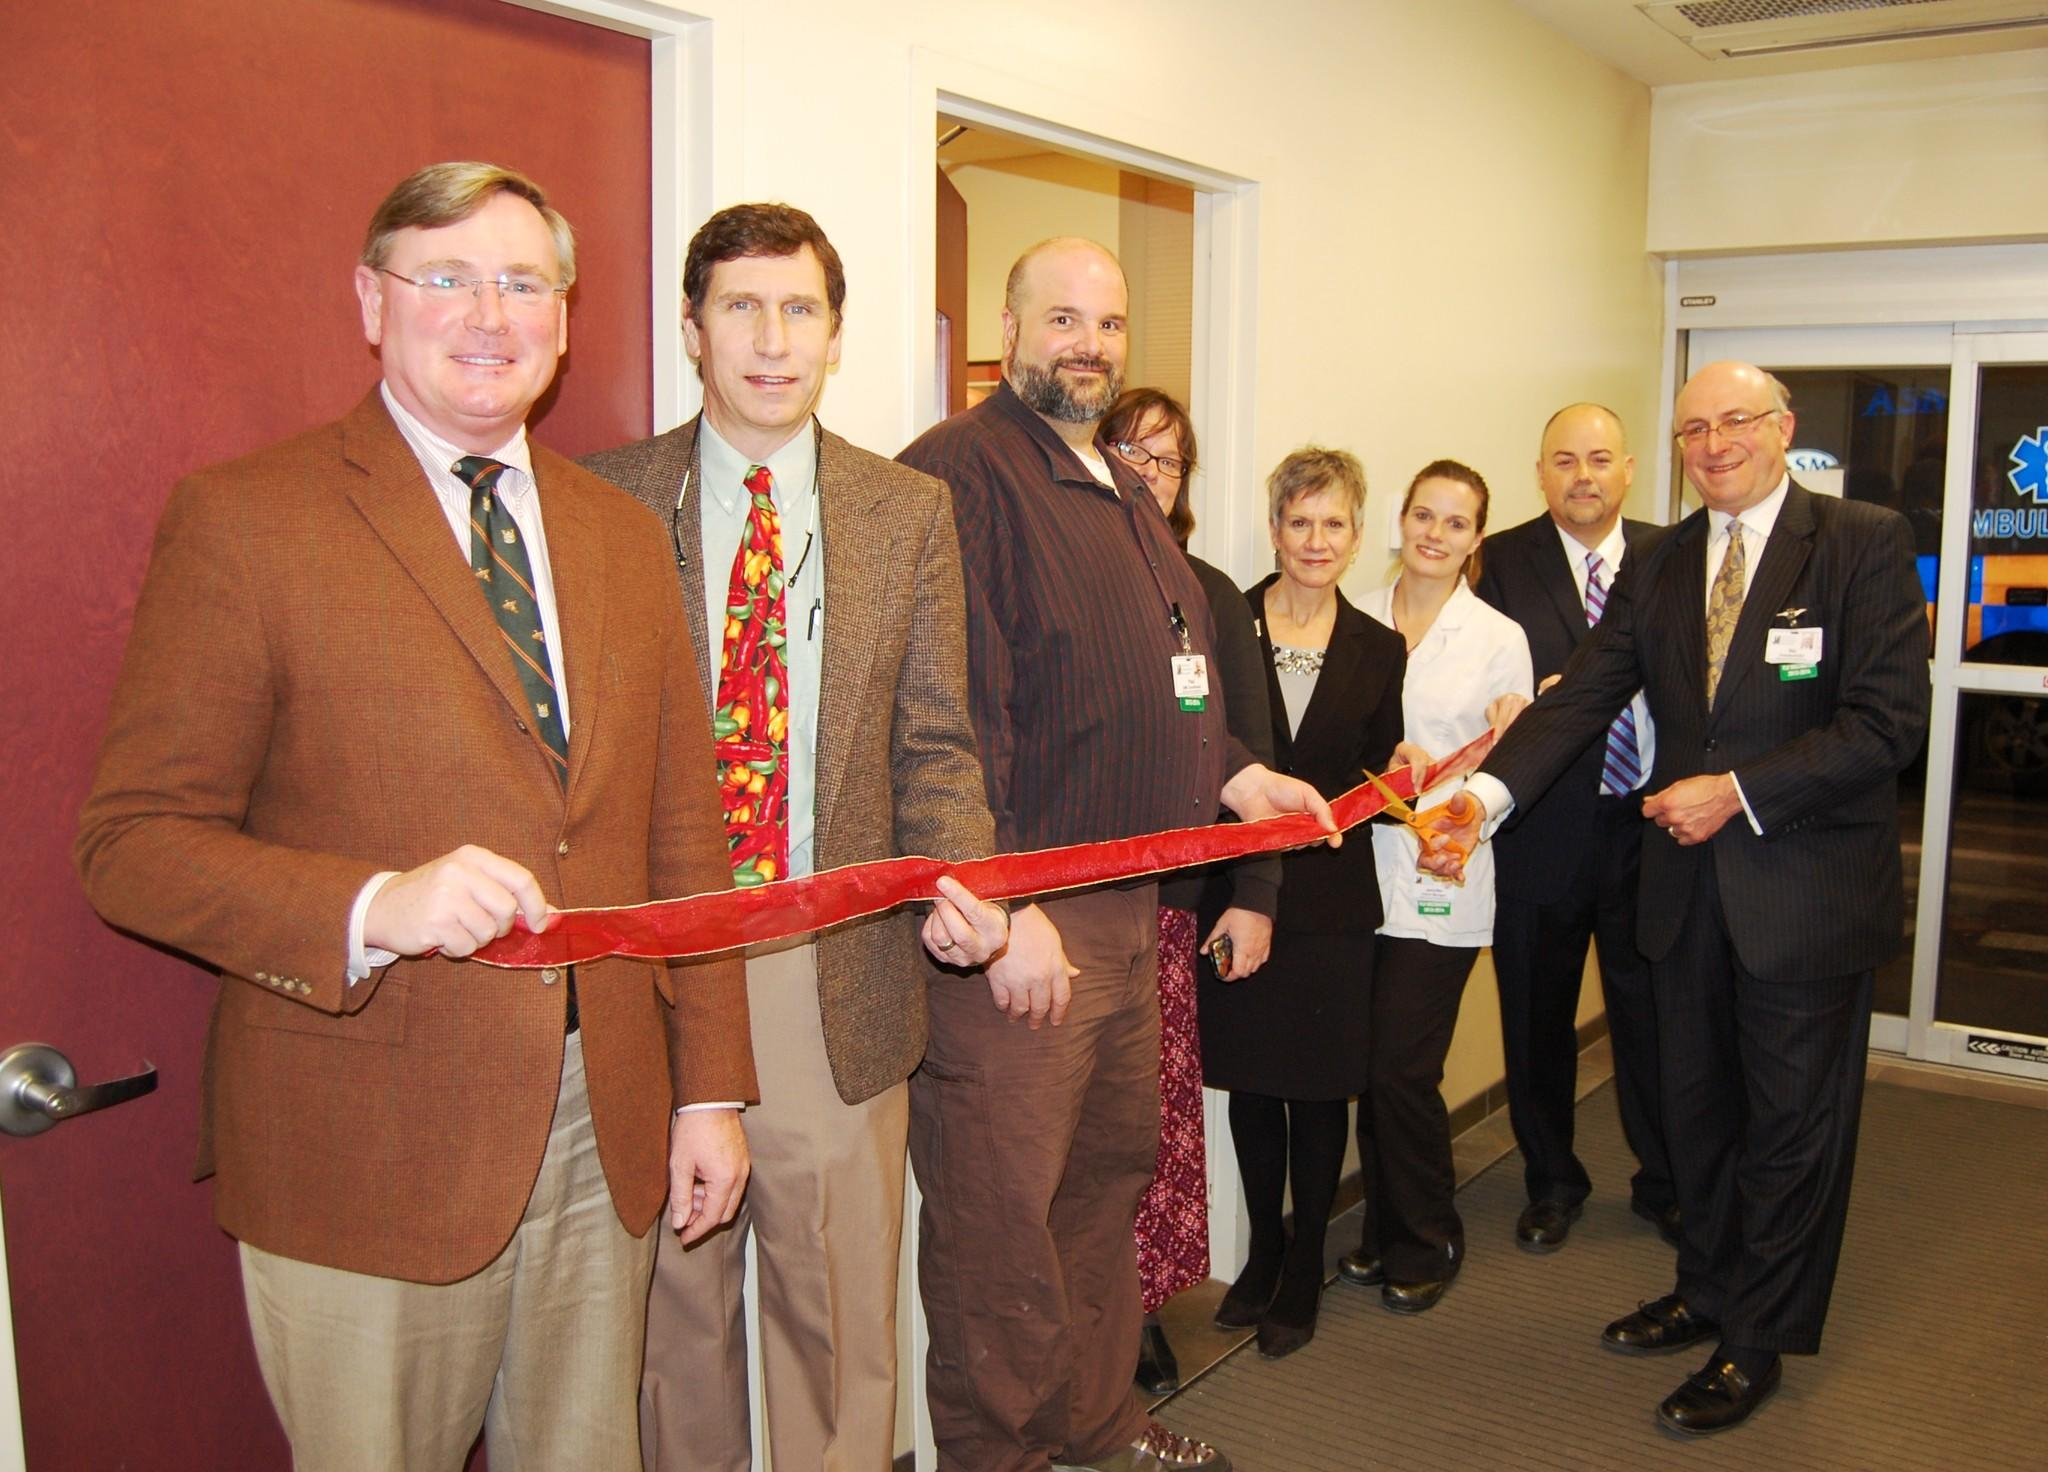 From left to right: Patrick Mahon, chairman, JMMC Board of Directors; Neil Moynihan, M.D., president, JMH Medical Staff; Paul Wentworth, EMS coordinator; Beth Van Alstyne, senior director, Nursing; Patricia Jagoe, assistant vice president, Patient Care Services; Jennifer Moskal, Emergency Department manager; David Herr, M.D., chairman, Department of Emergency Medicine; and Stuart E. Rosenberg, president & CEO, JMMC.